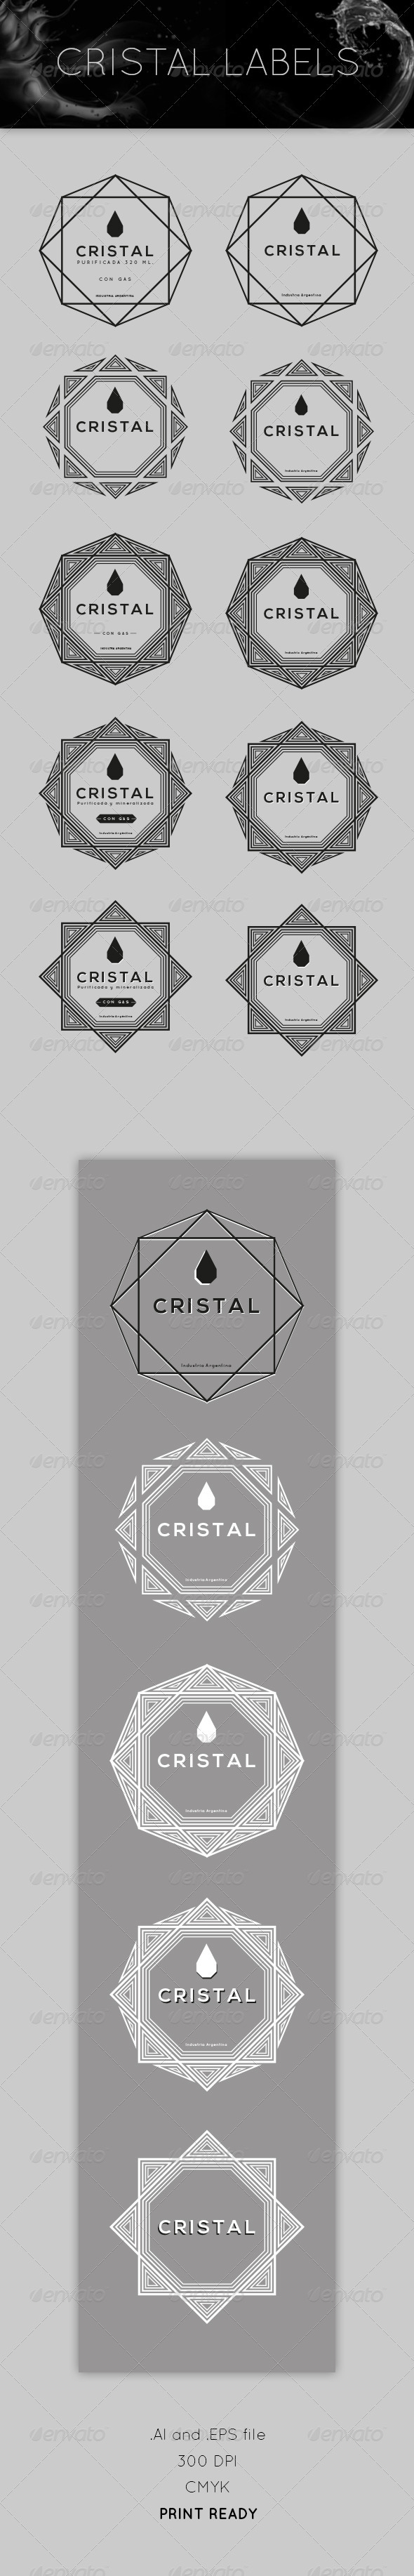 Cristal Labels - Decorative Vectors